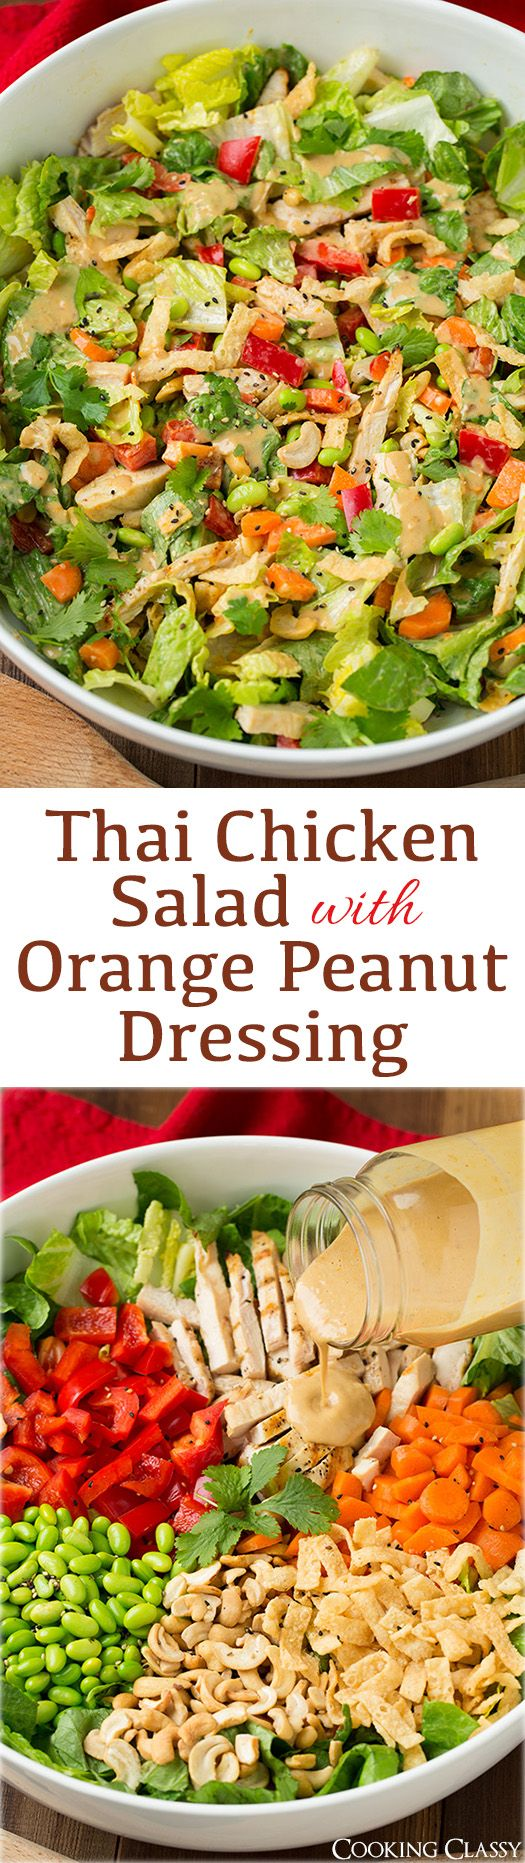 Thai Chicken Salad with Orange Peanut Dressing. Romaine, grilled chicken, edamame, red bell, carrots, cashews, cilantro and wonton strips with an amazing peanut dressing!